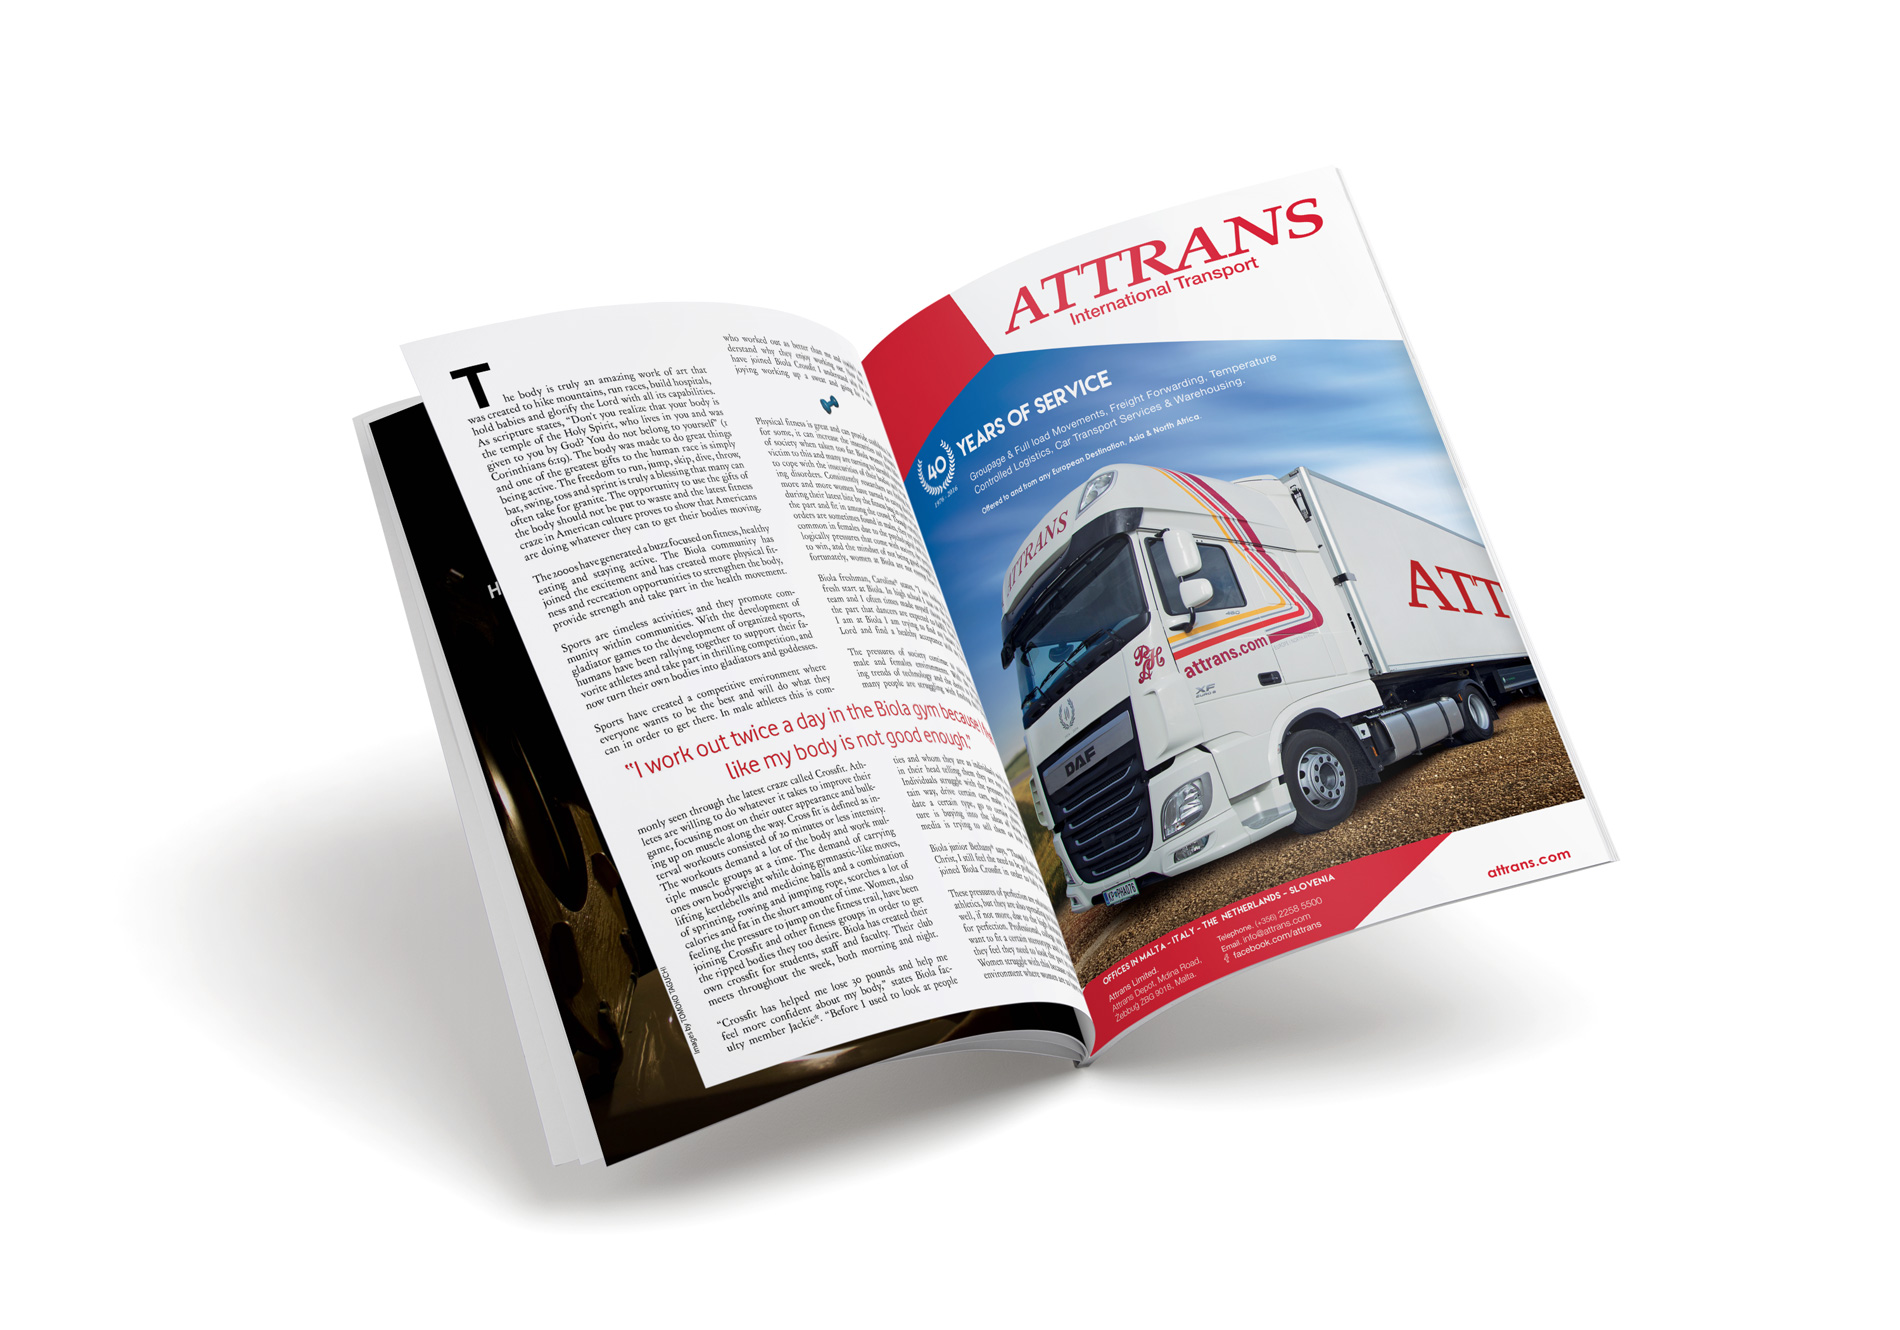 Web Design Malta, Digital Marketing Malta, Web Development Malta, SEO Malta - 4Sight Create - Project: Attrans magazine advert